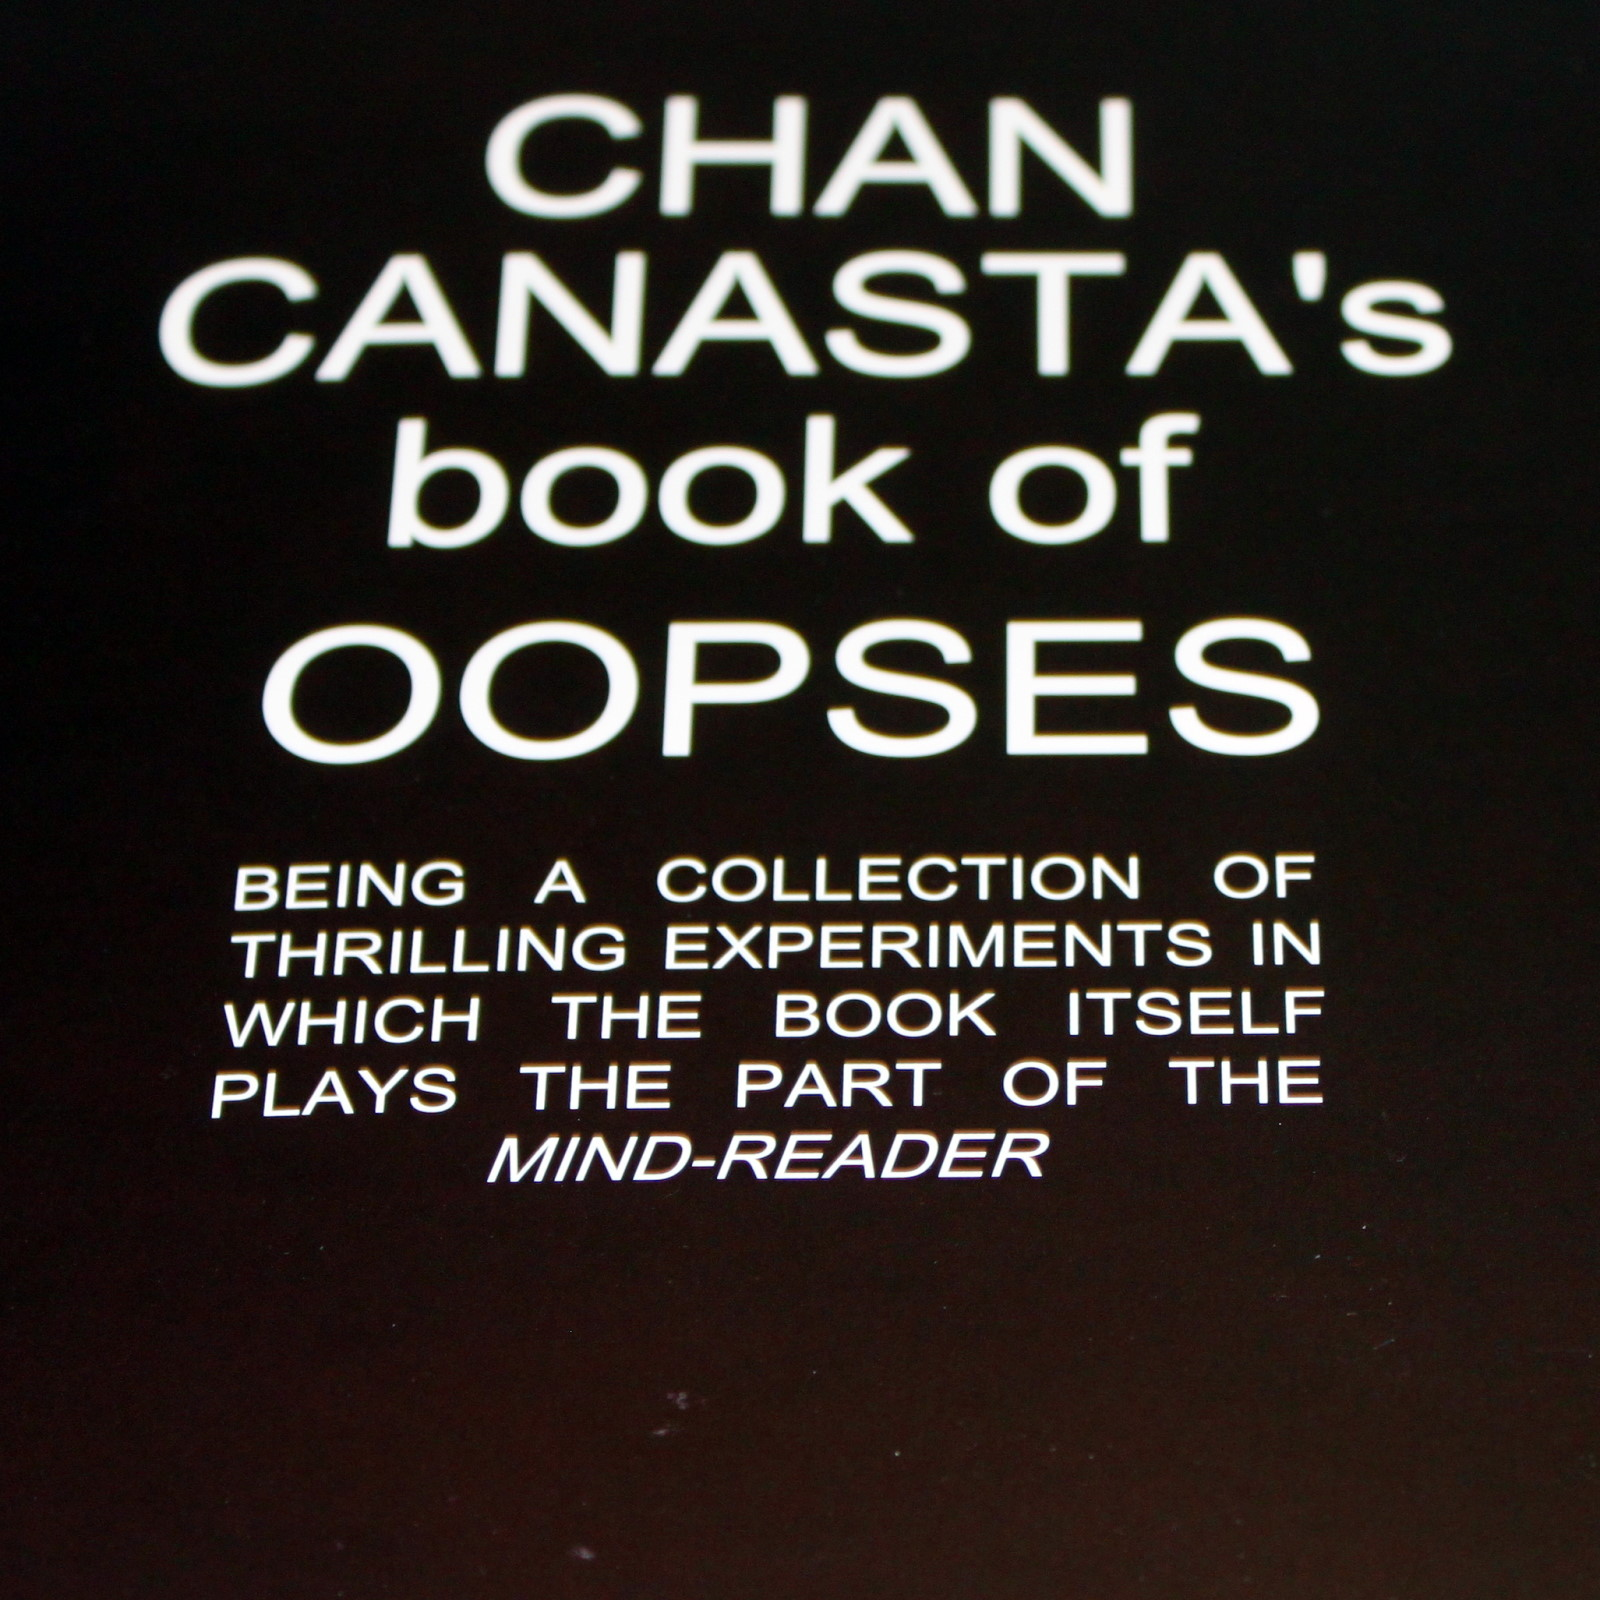 Chan Canasta's Book of Oopses by Chan Canasta